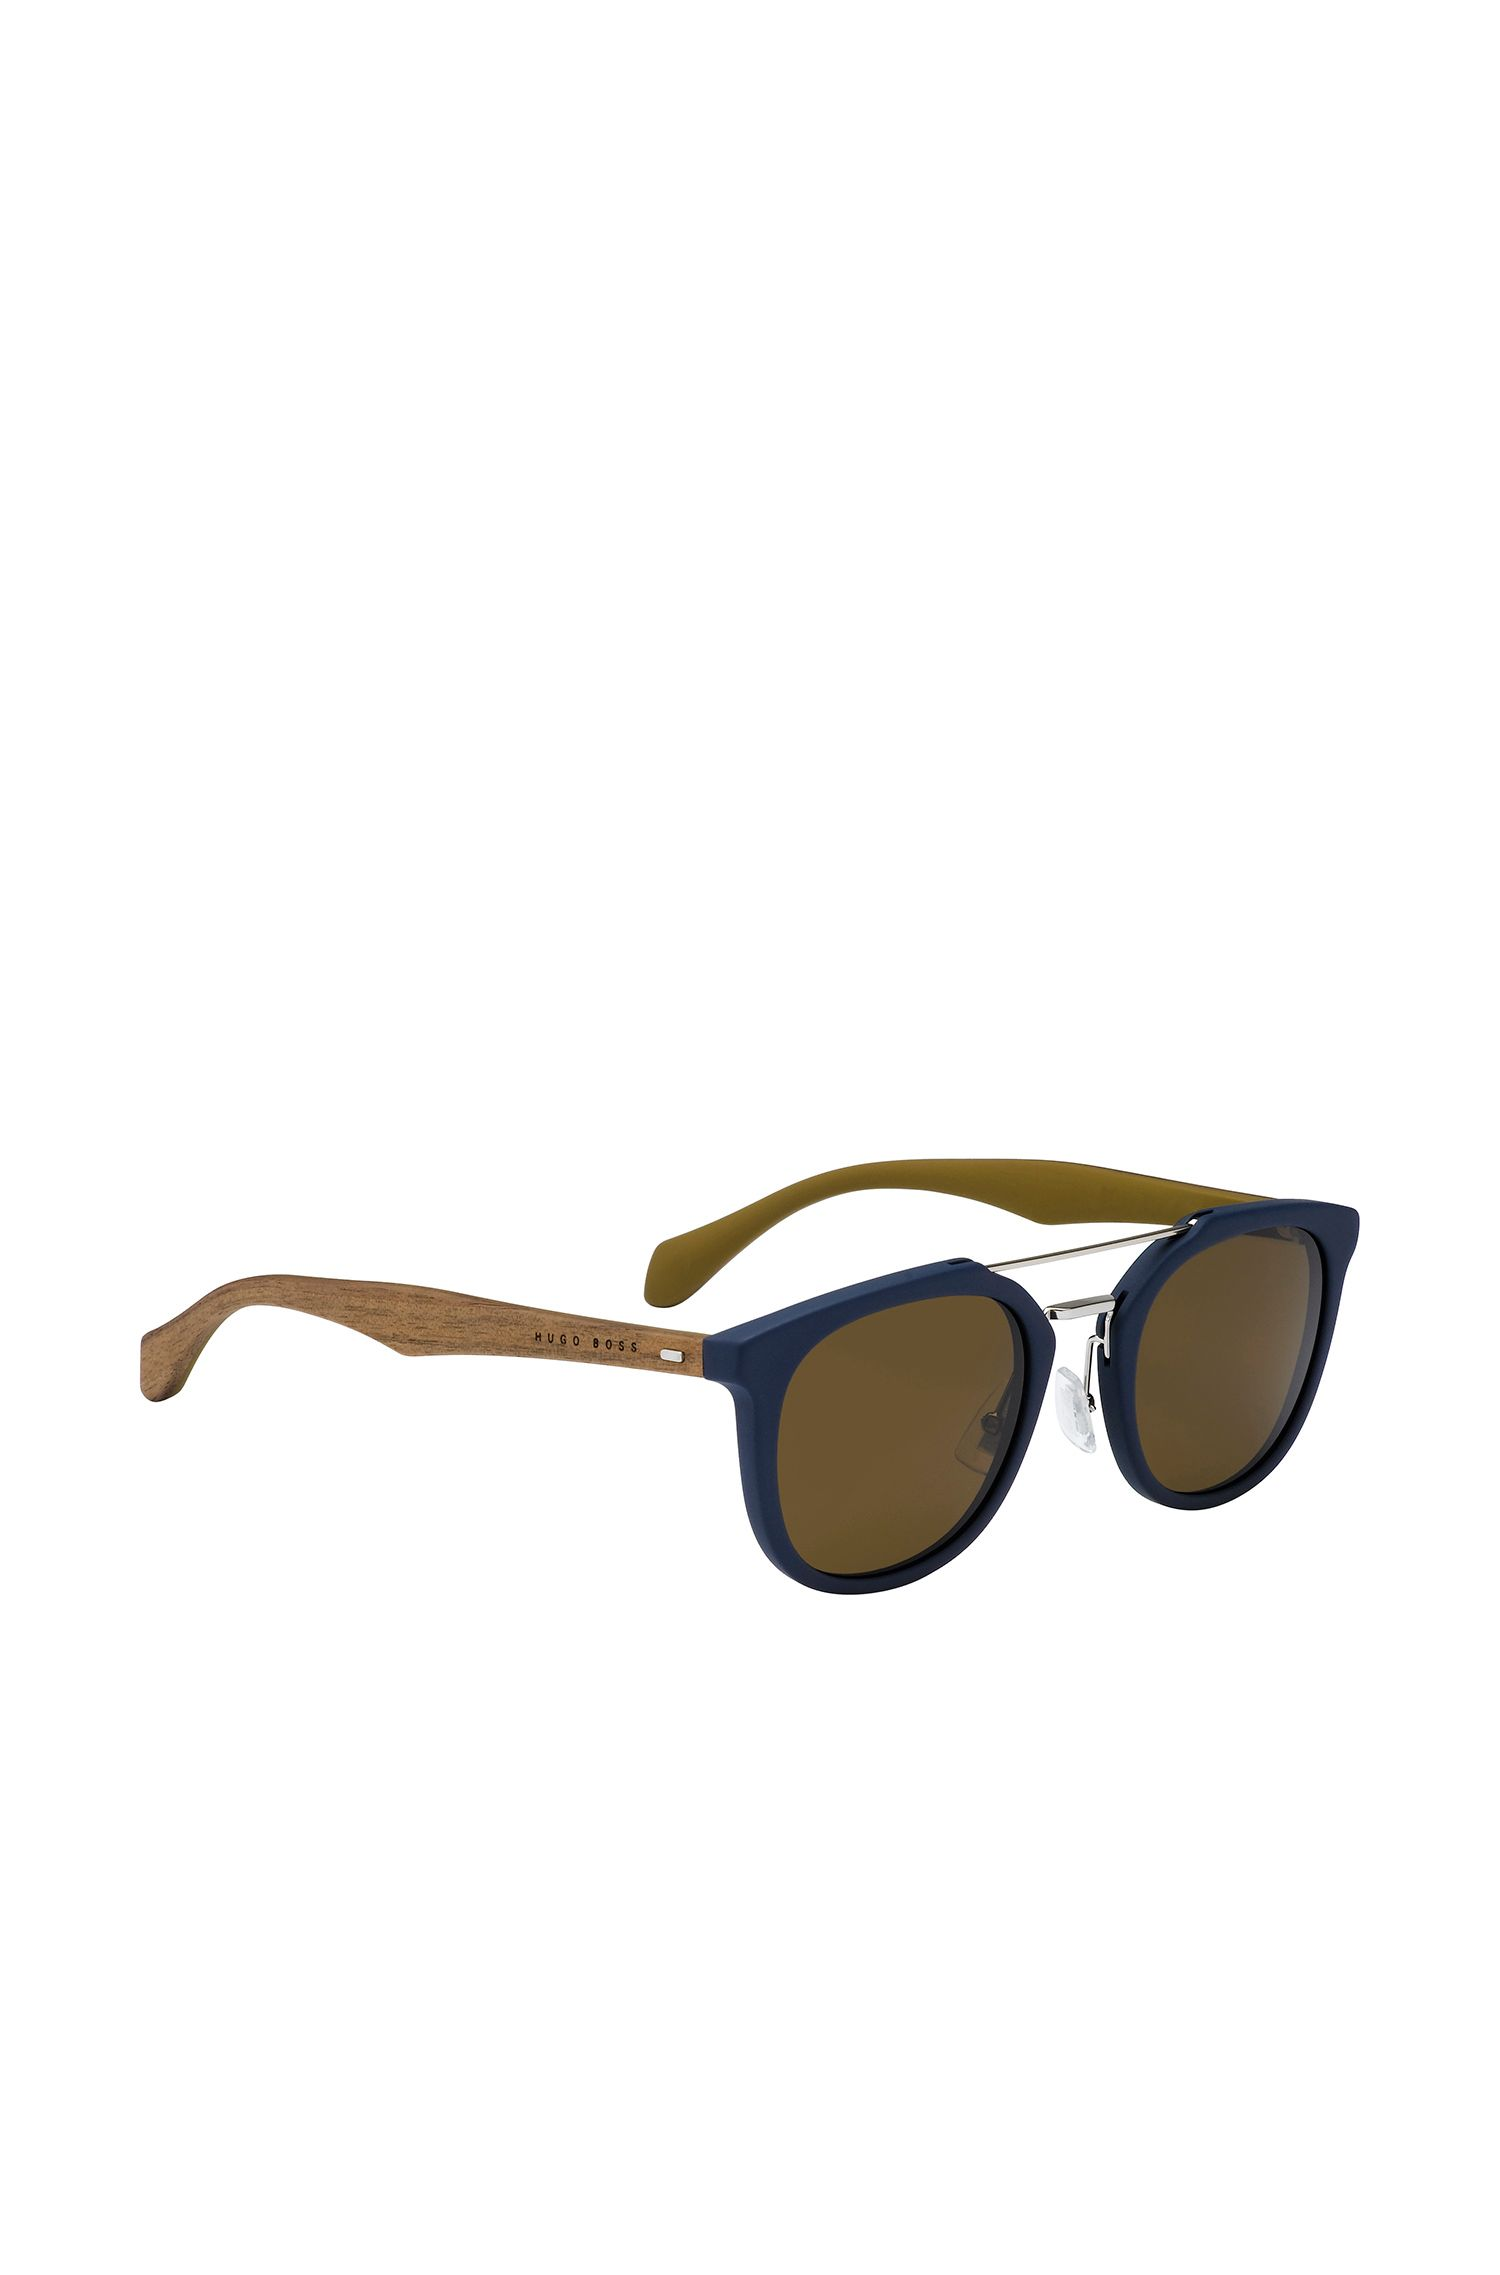 'BOSS 0777S'   Brown Lens Clubmaster Sunglasses